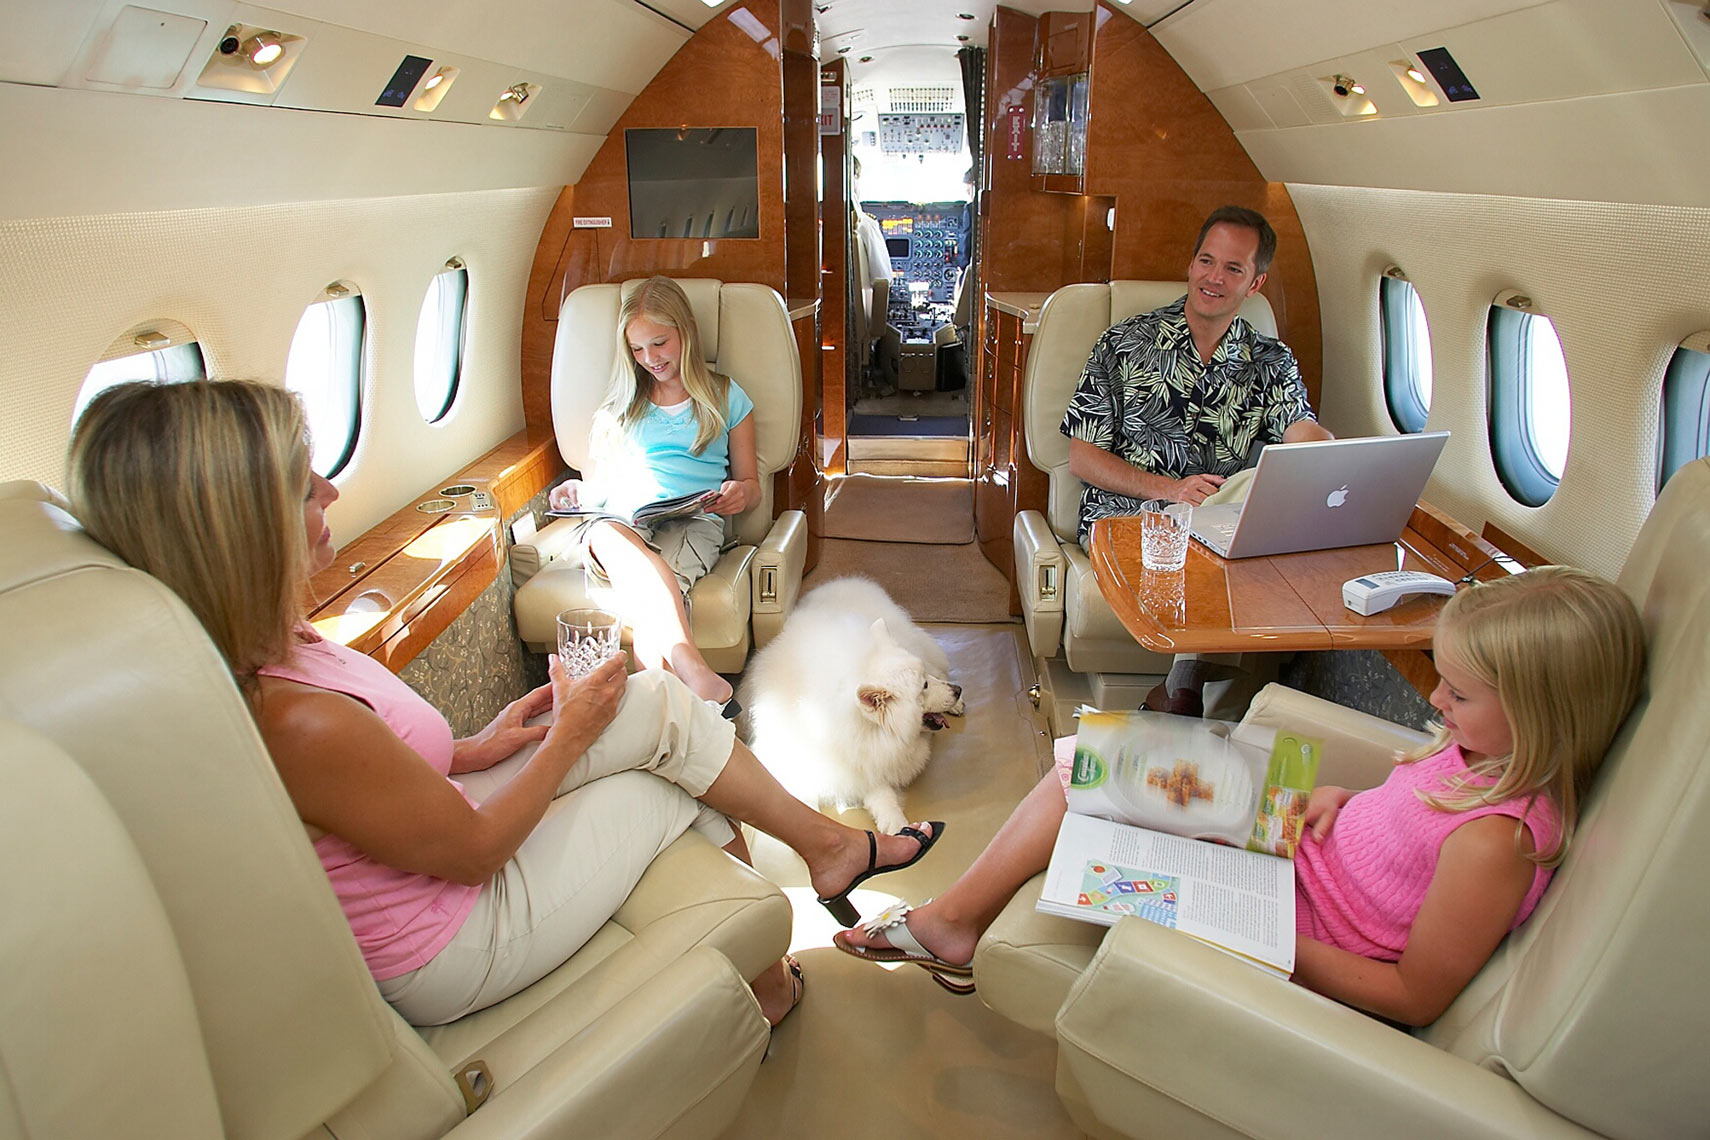 Jet/Jetchoice/family in plane/lifestyle photo